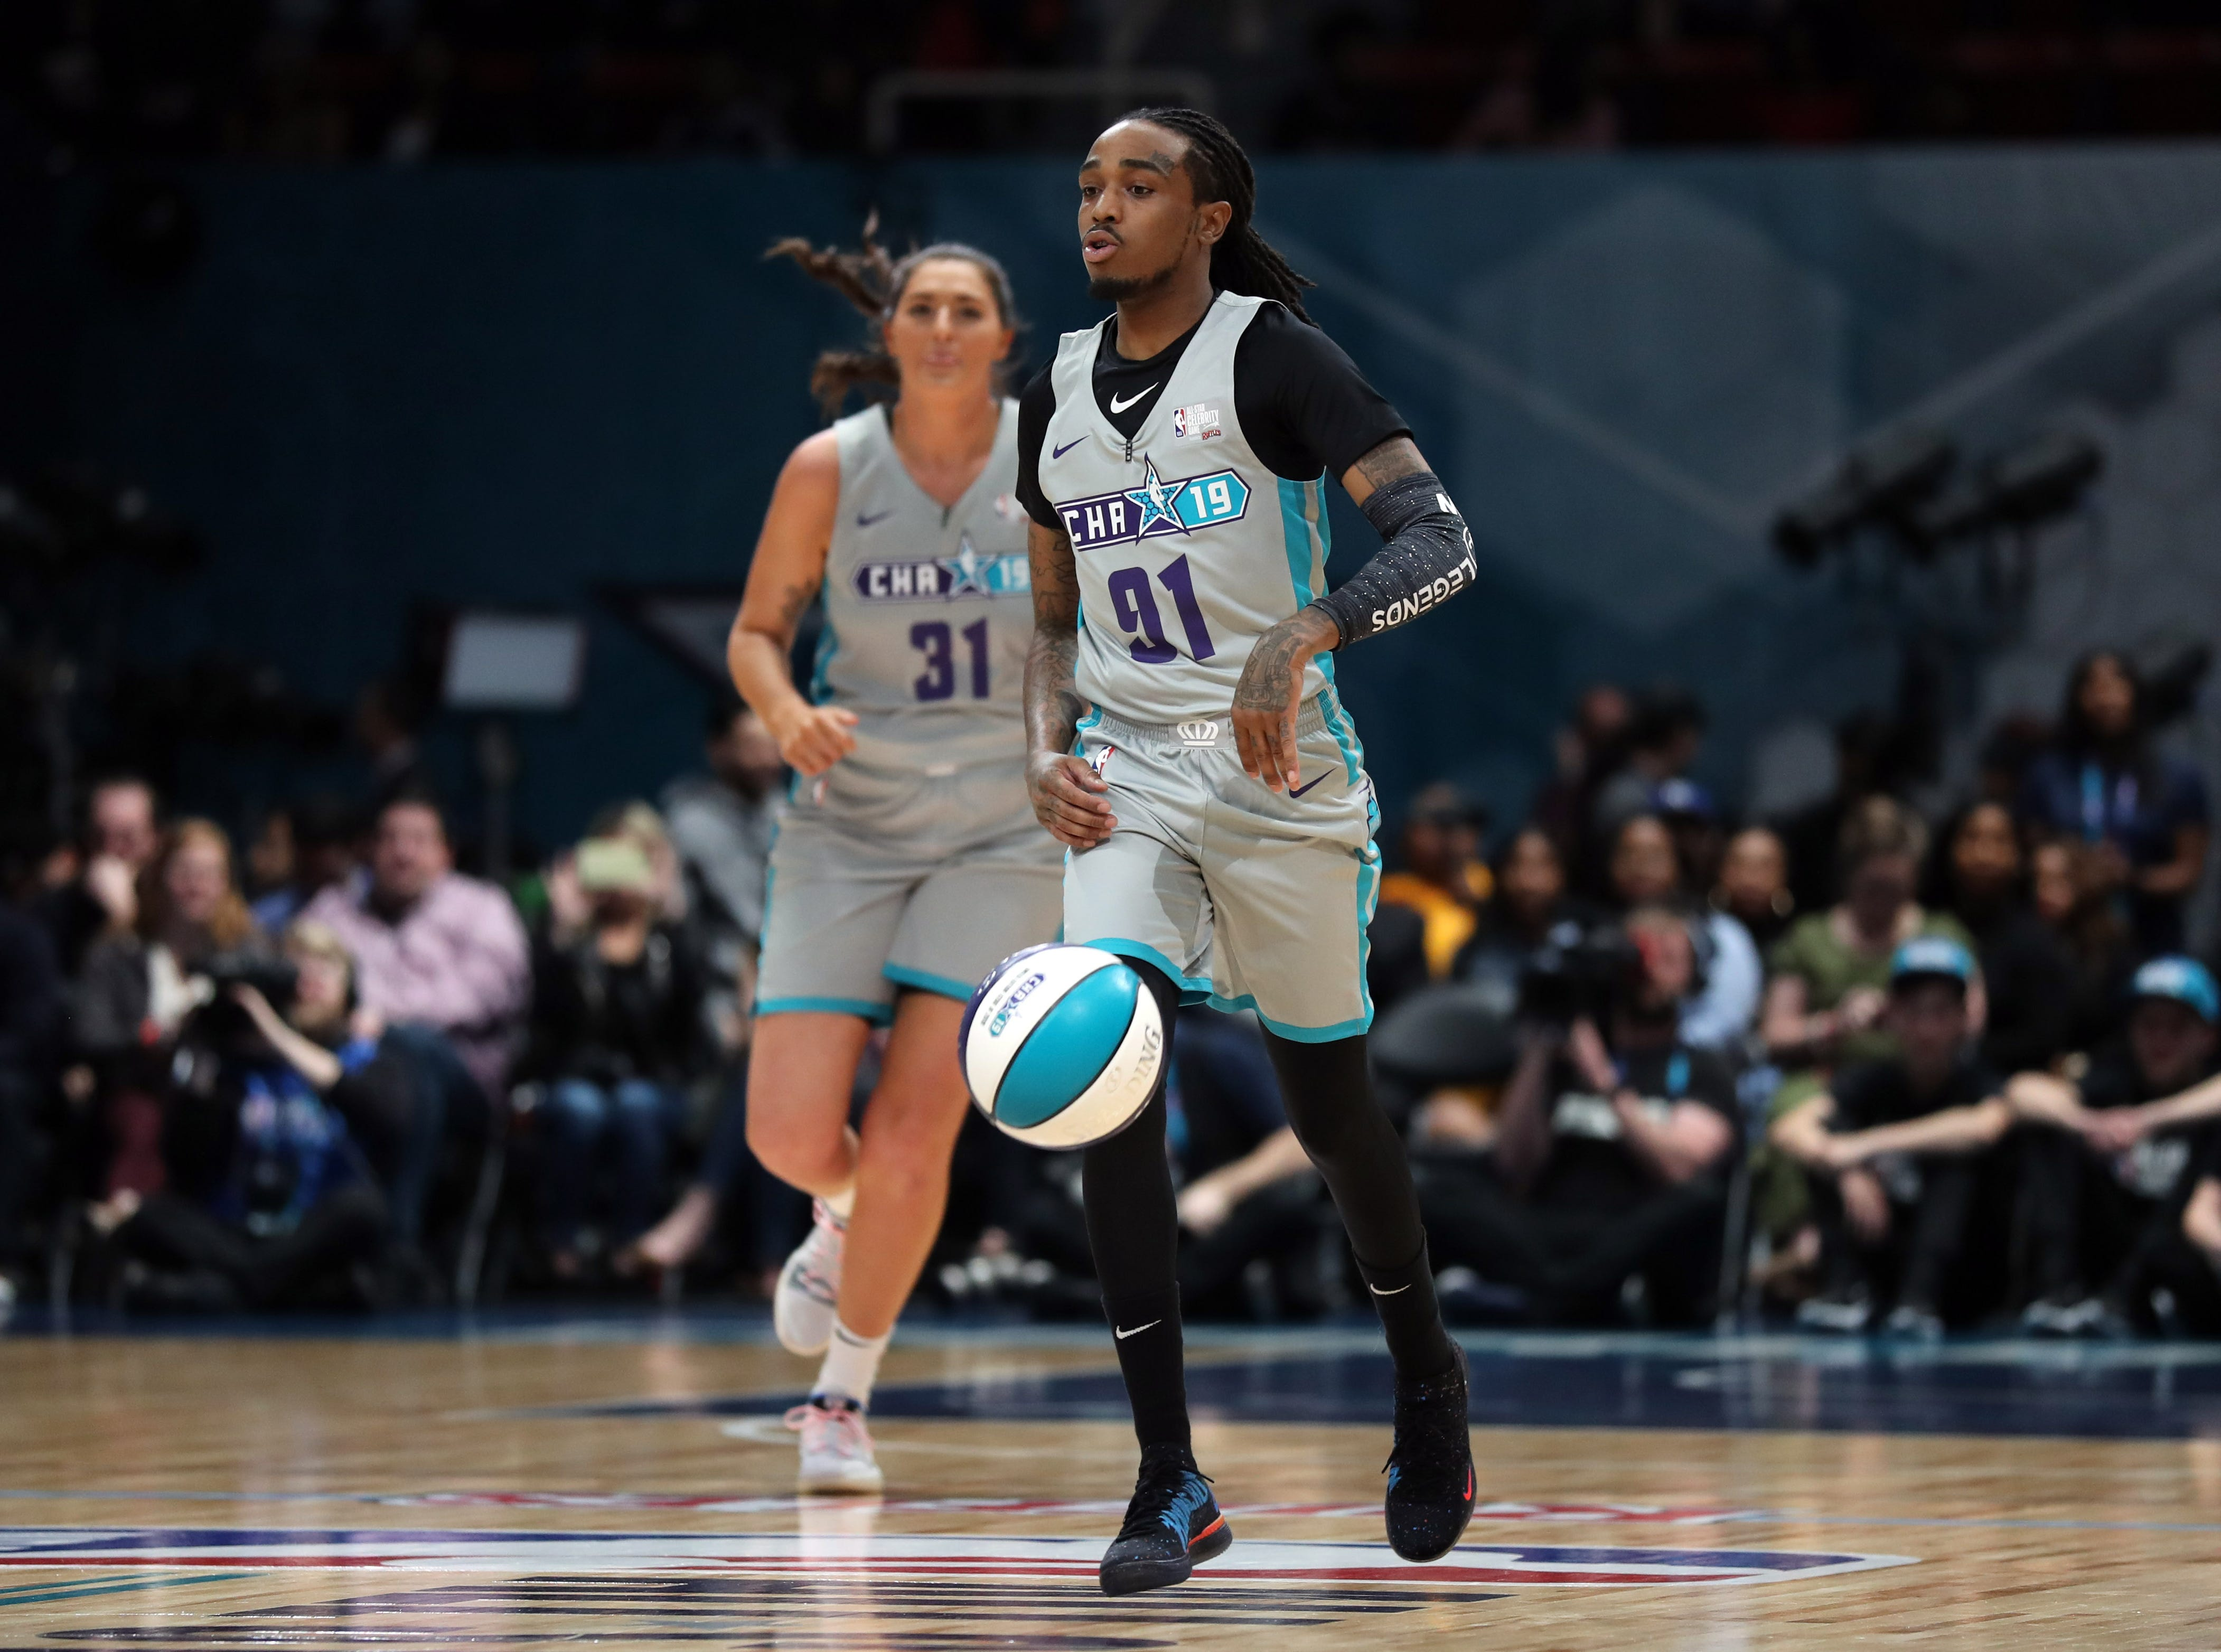 Quavo brings the ball up the court during the first quarter of the Celebrity Game.